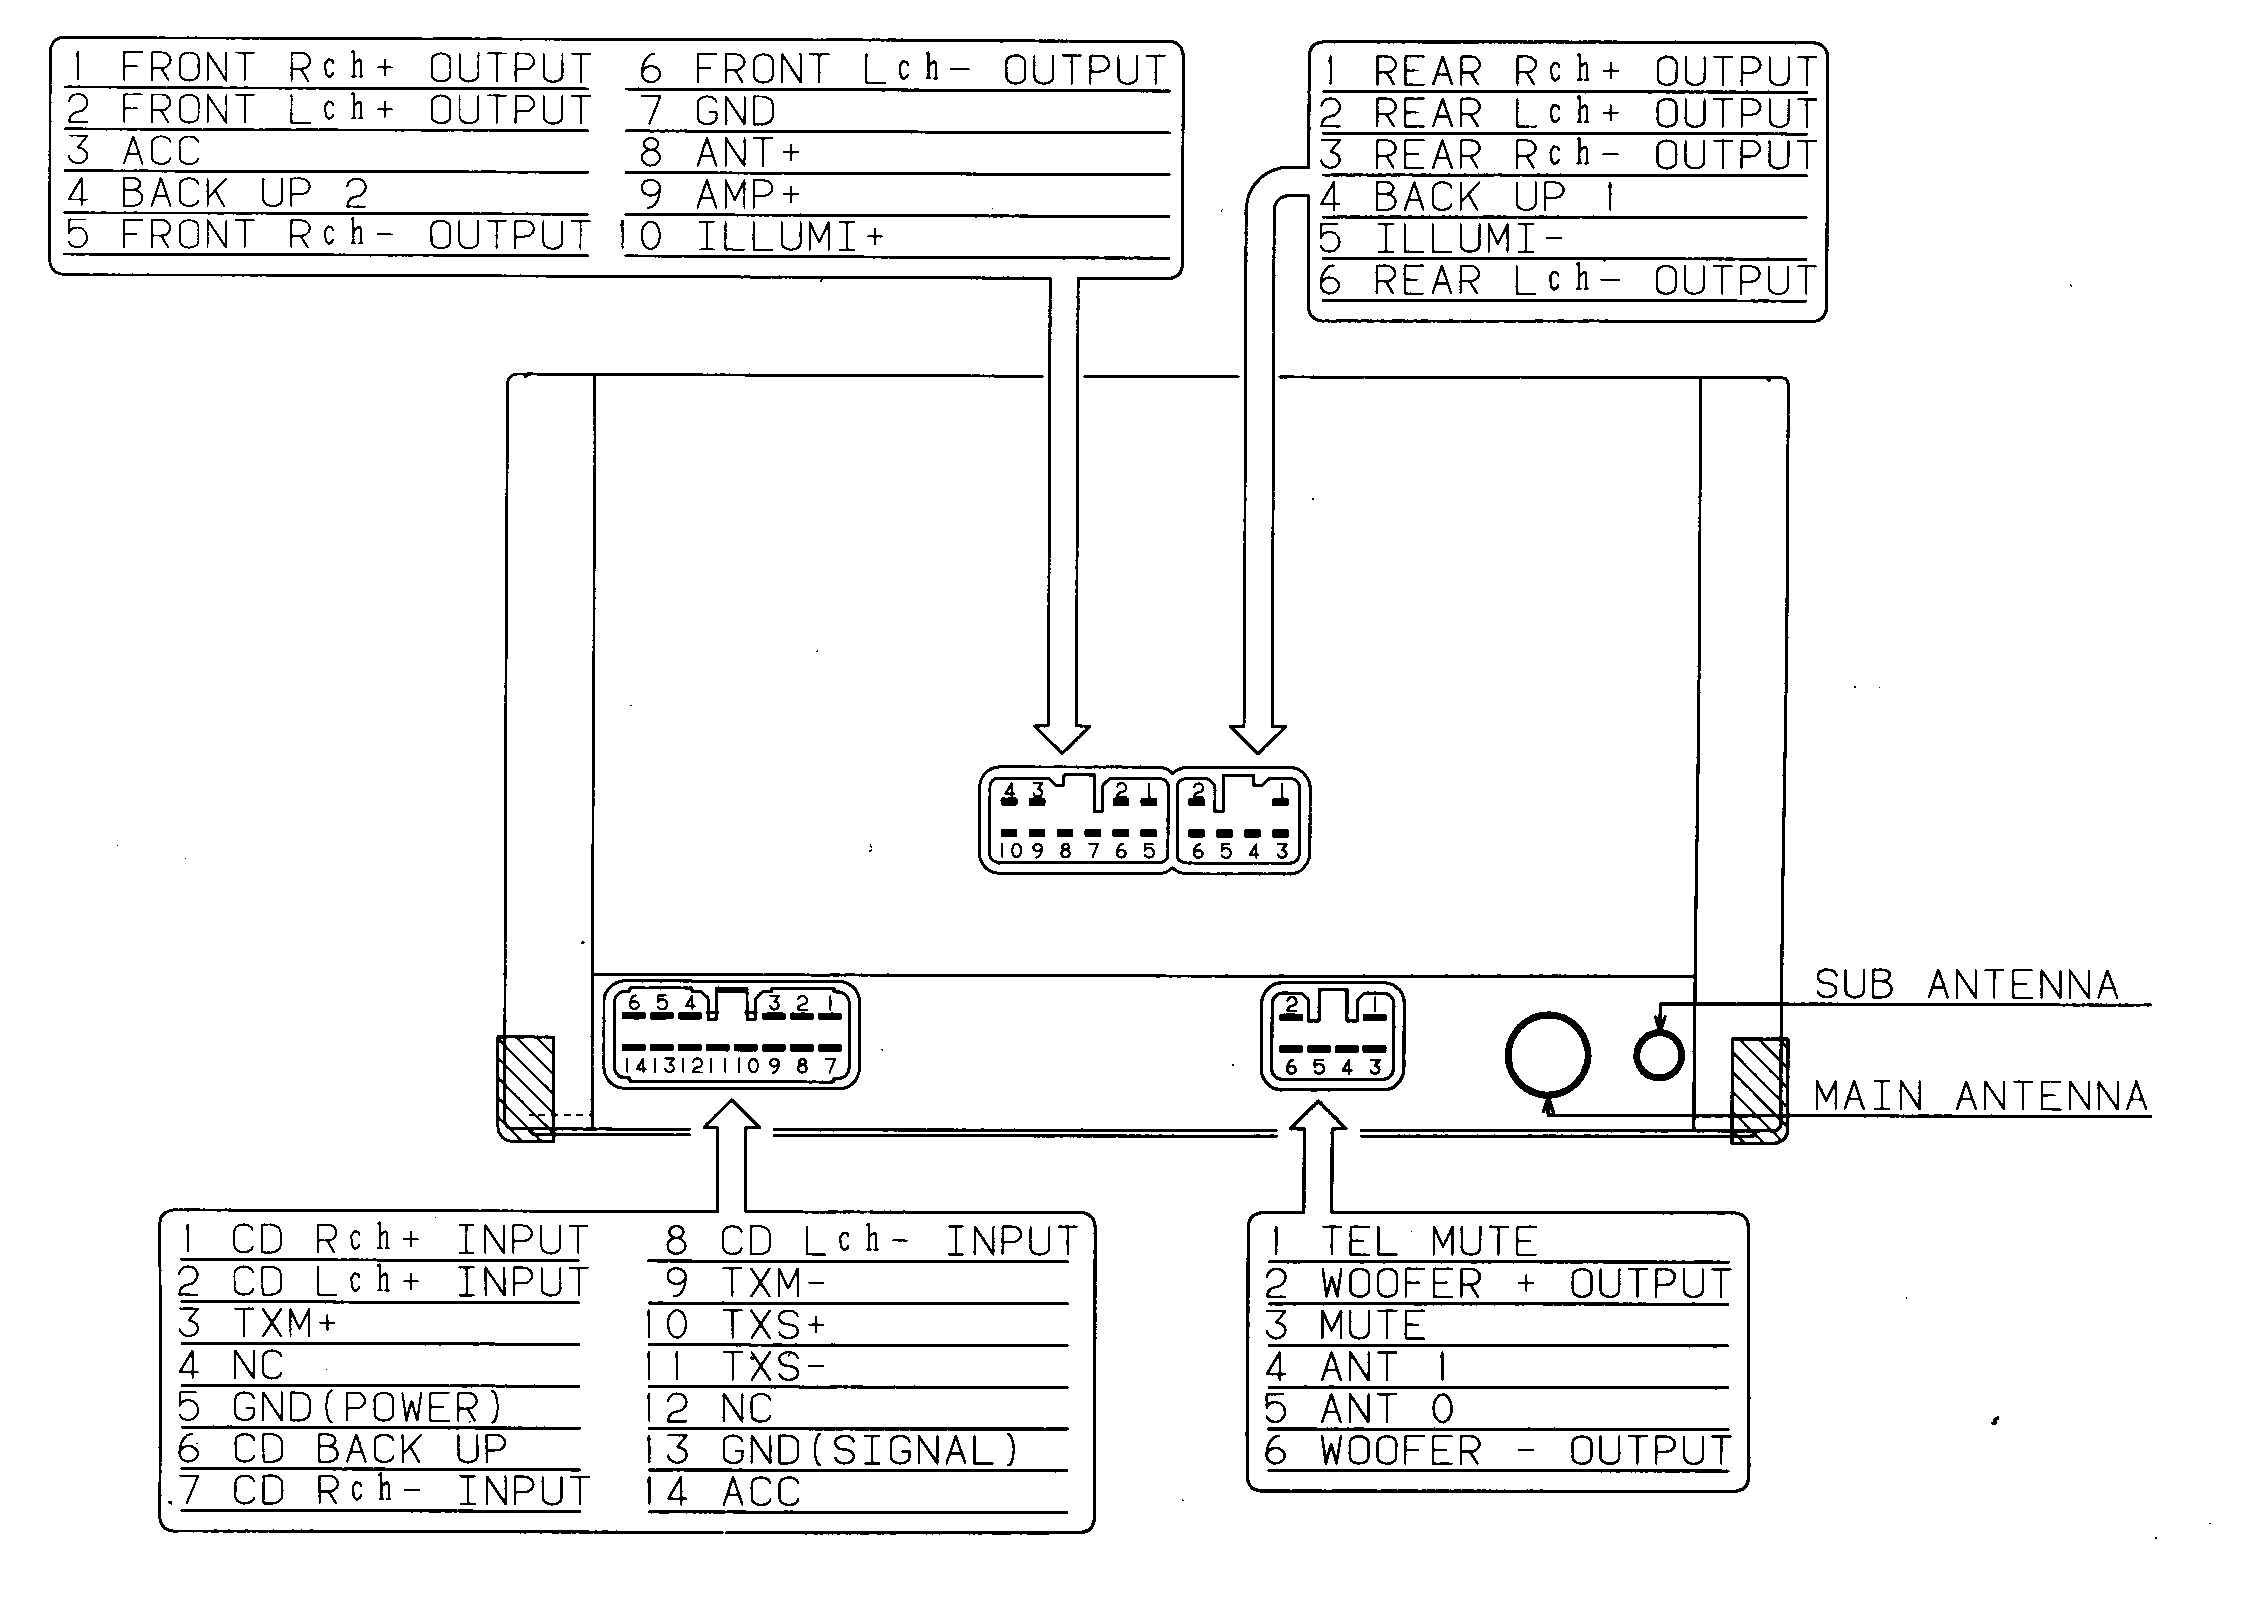 Lexus car stereo wiring diagram harness pinout connector wire daihatsu ej ve ecu wiring diagram volkswagen wiring diagram kenwood dpx791bh wiring diagram at gsmportal.co